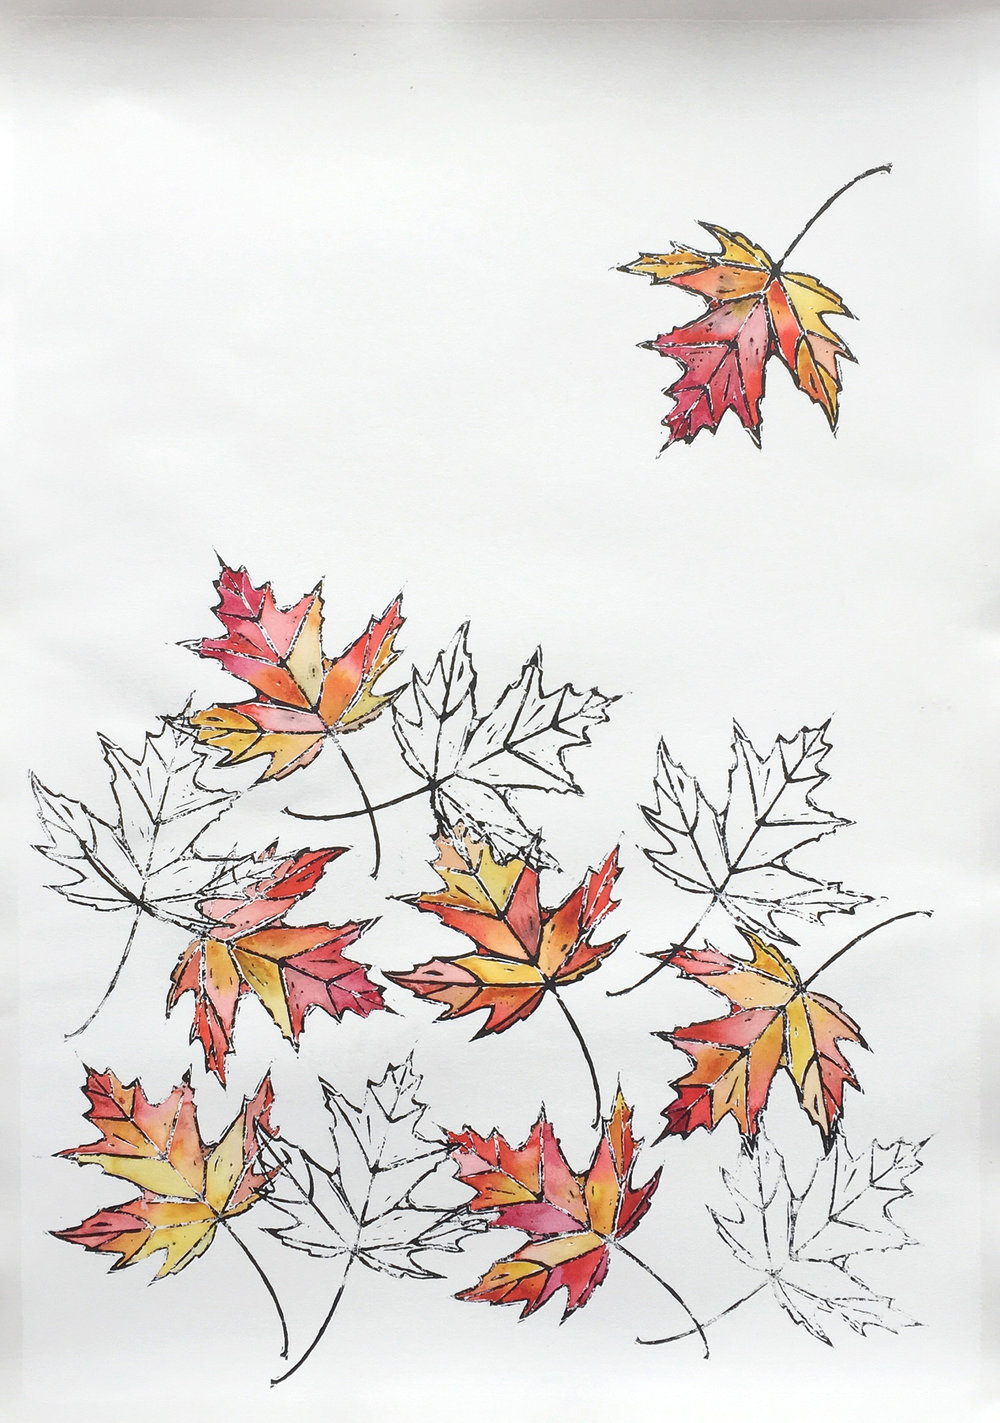 Falling - Red Maple